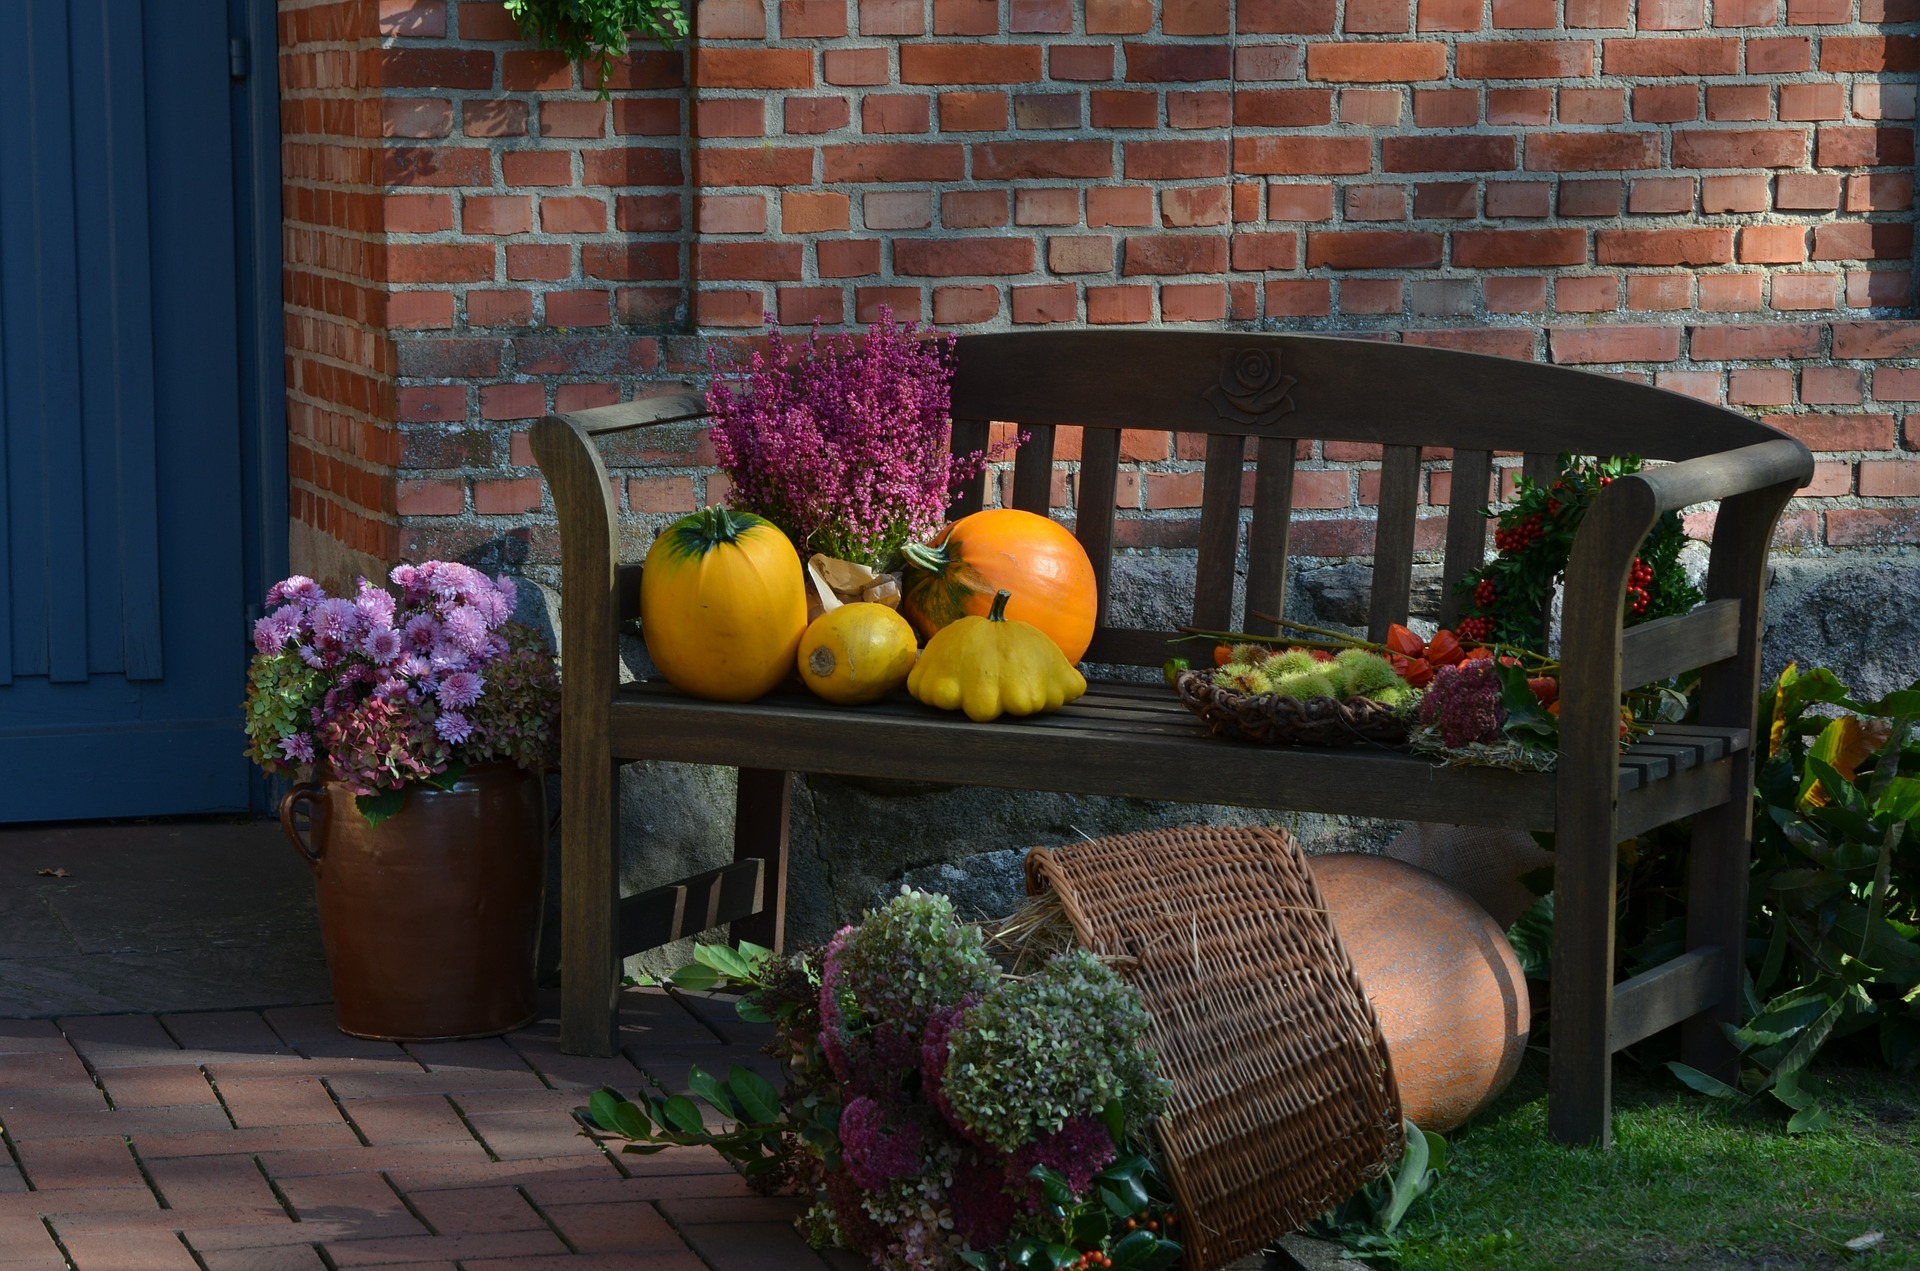 Photo of Pumpkins & Flowers on a Bench